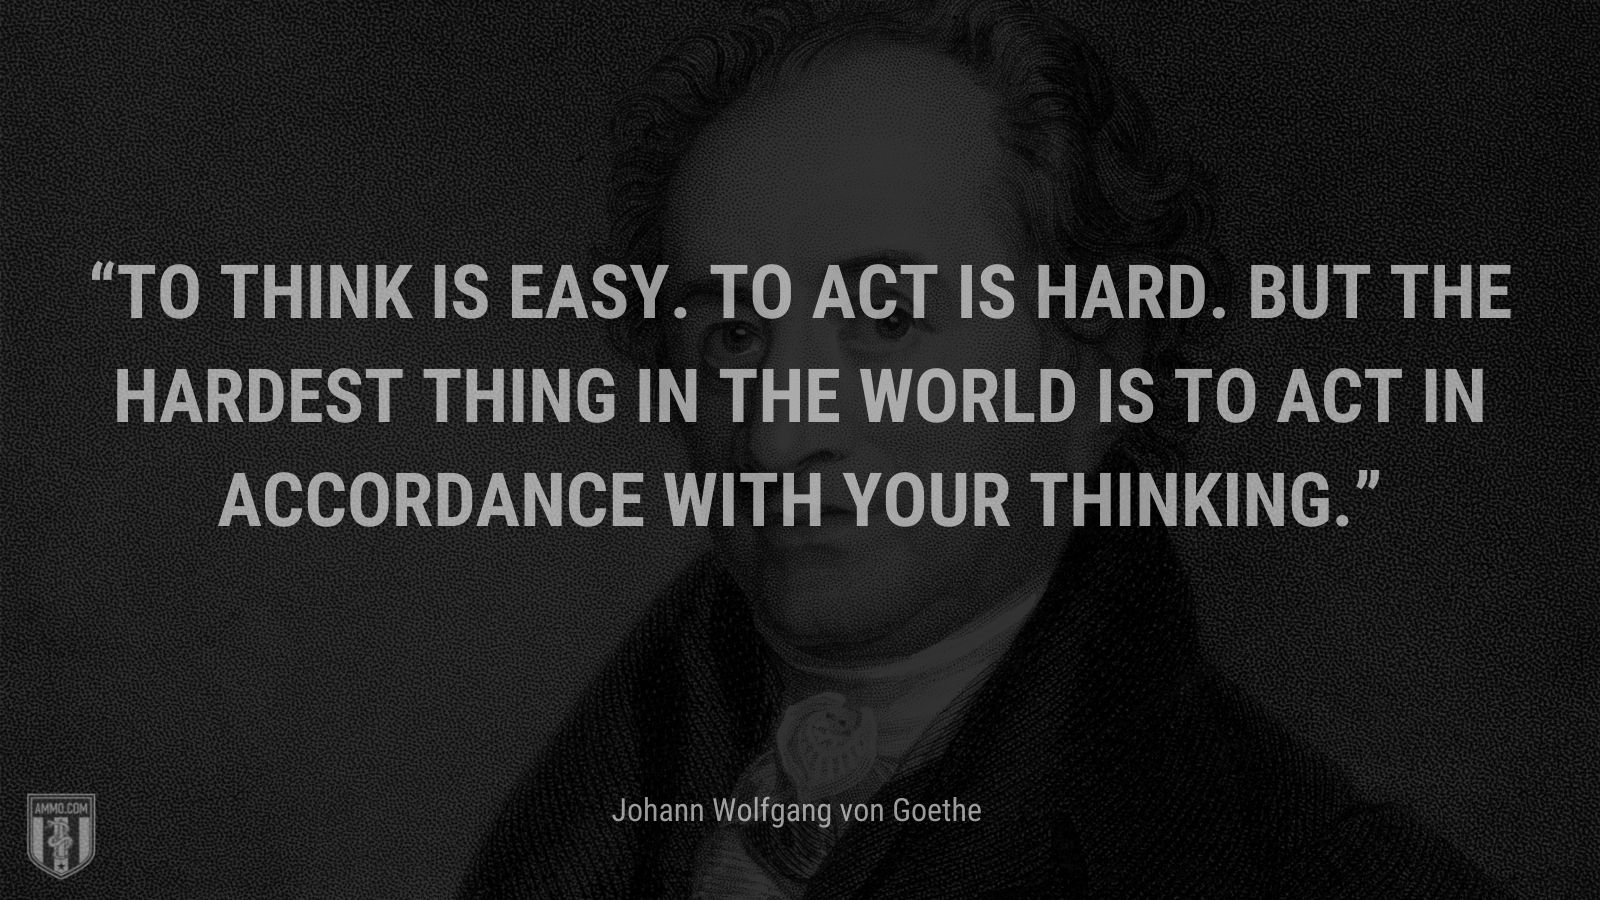 """""""To think is easy. To act is hard. But the hardest thing in the world is to act in accordance with your thinking."""" - Johann Wolfgang von Goethe"""